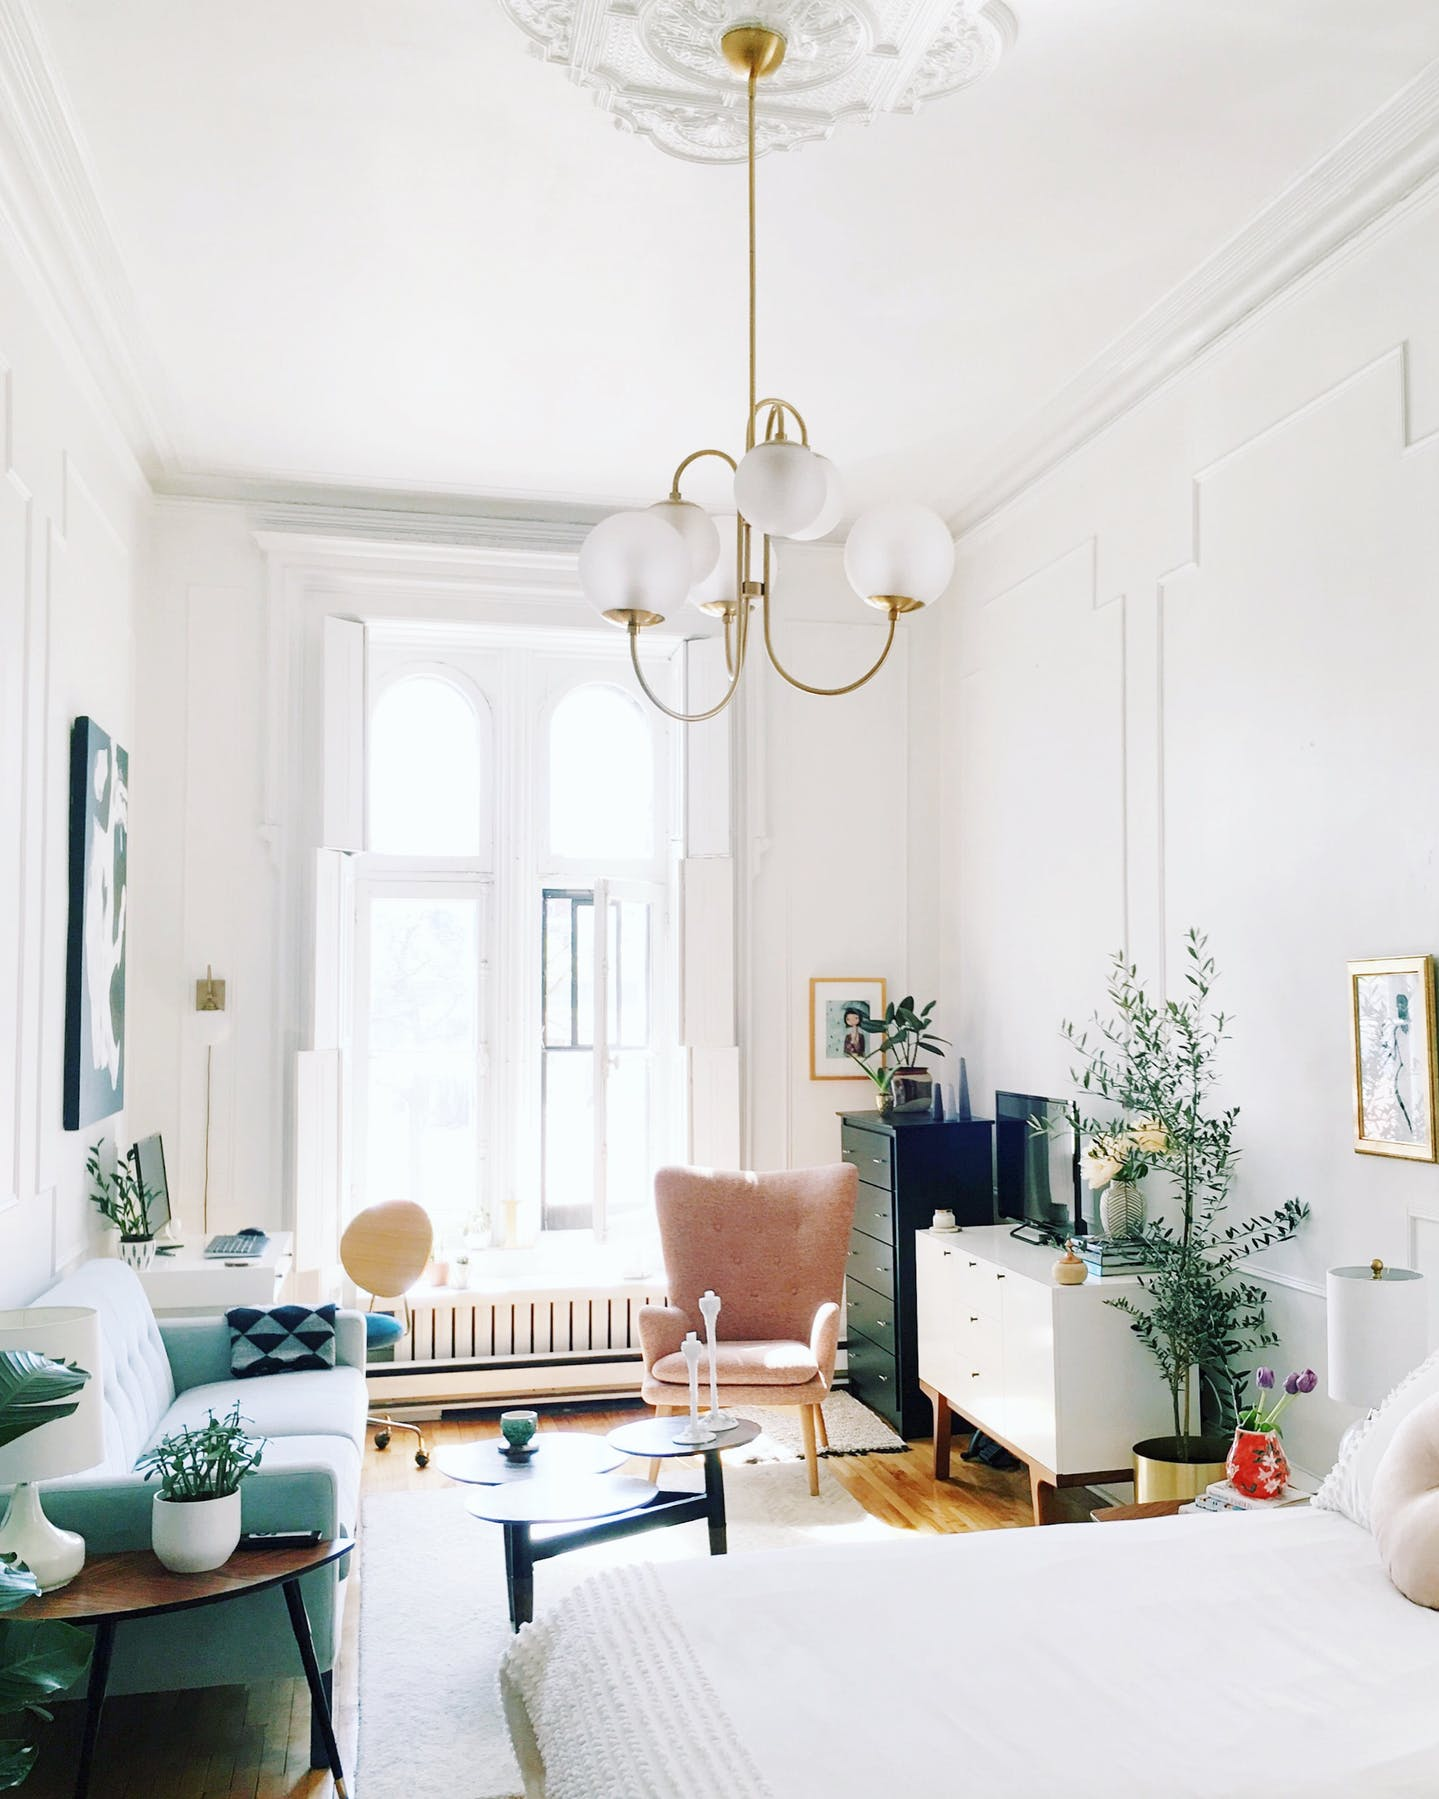 Decorate Small Living Room: 5 Small Apartment Decorating Tips To Make The Most Of Your